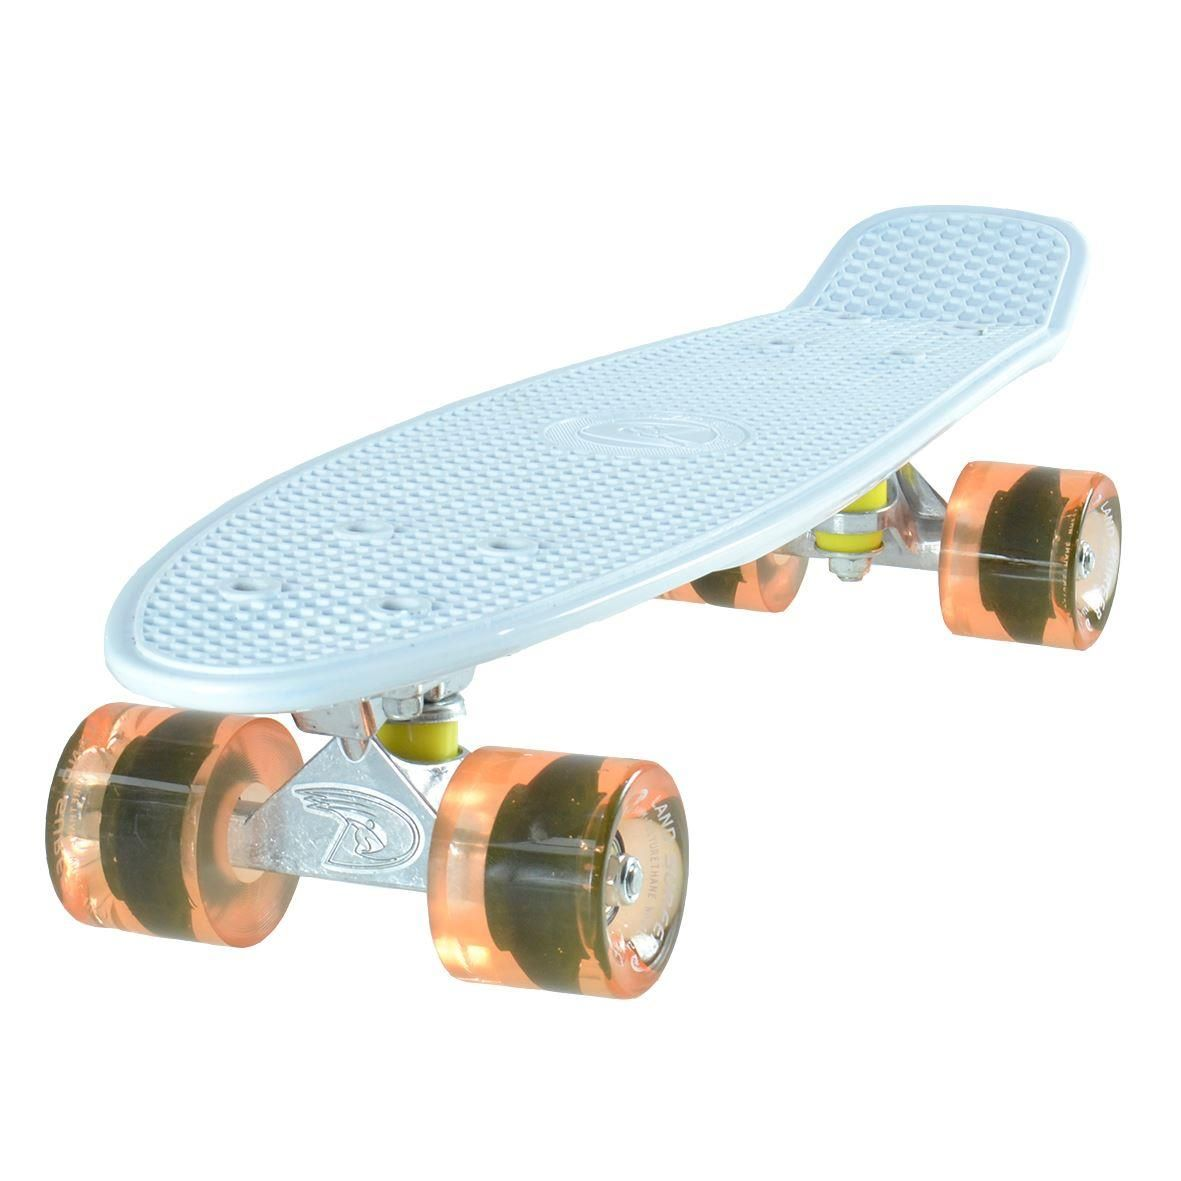 Land Surfer Cruiser White Skateboard Transparent Orange Wheels